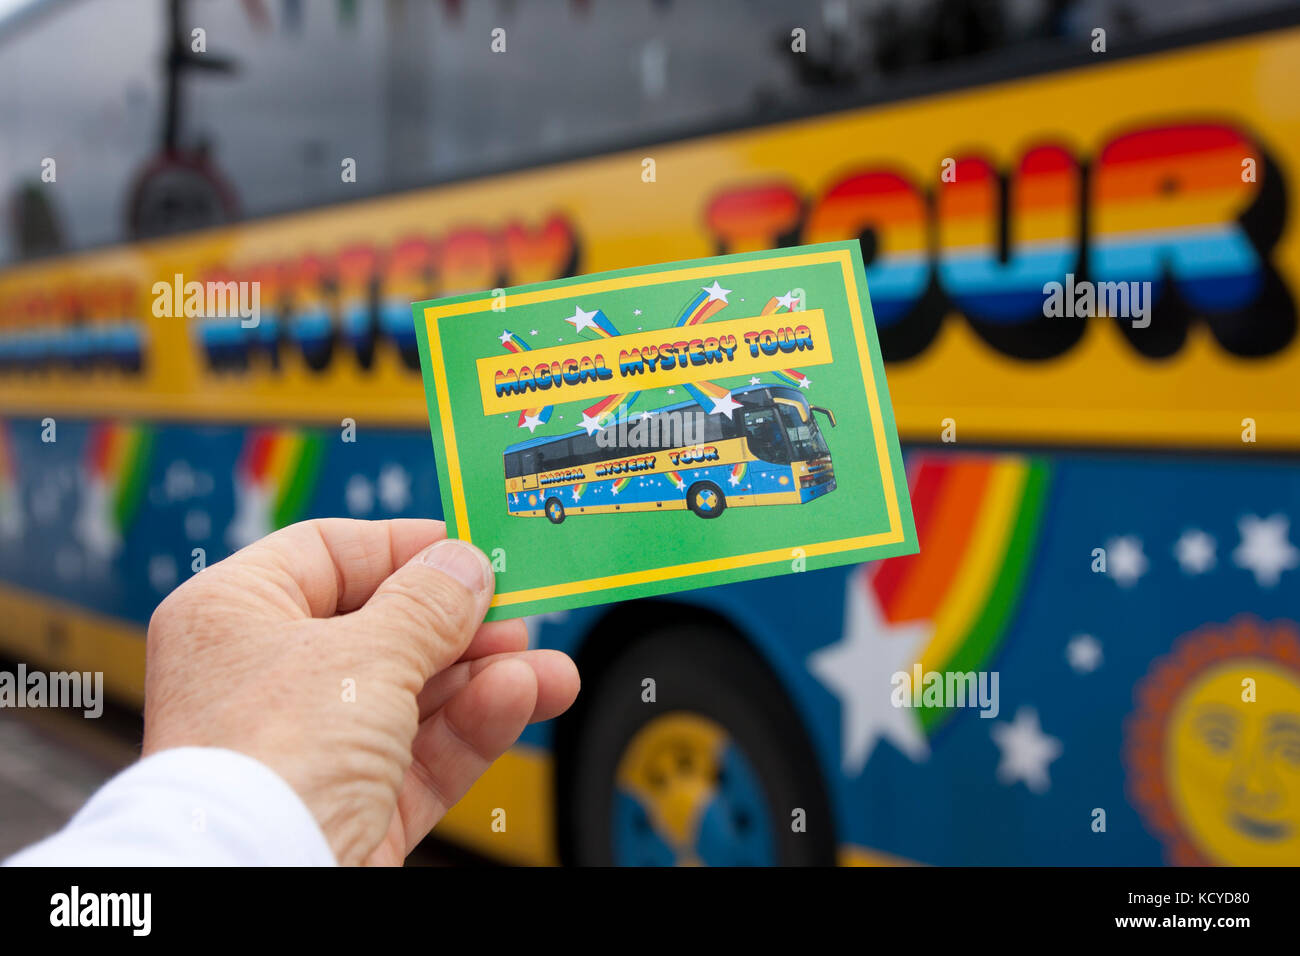 Magical Mystery Tour ticket and bus, Albert Dock, Liverpool, Merseyside - Stock Image